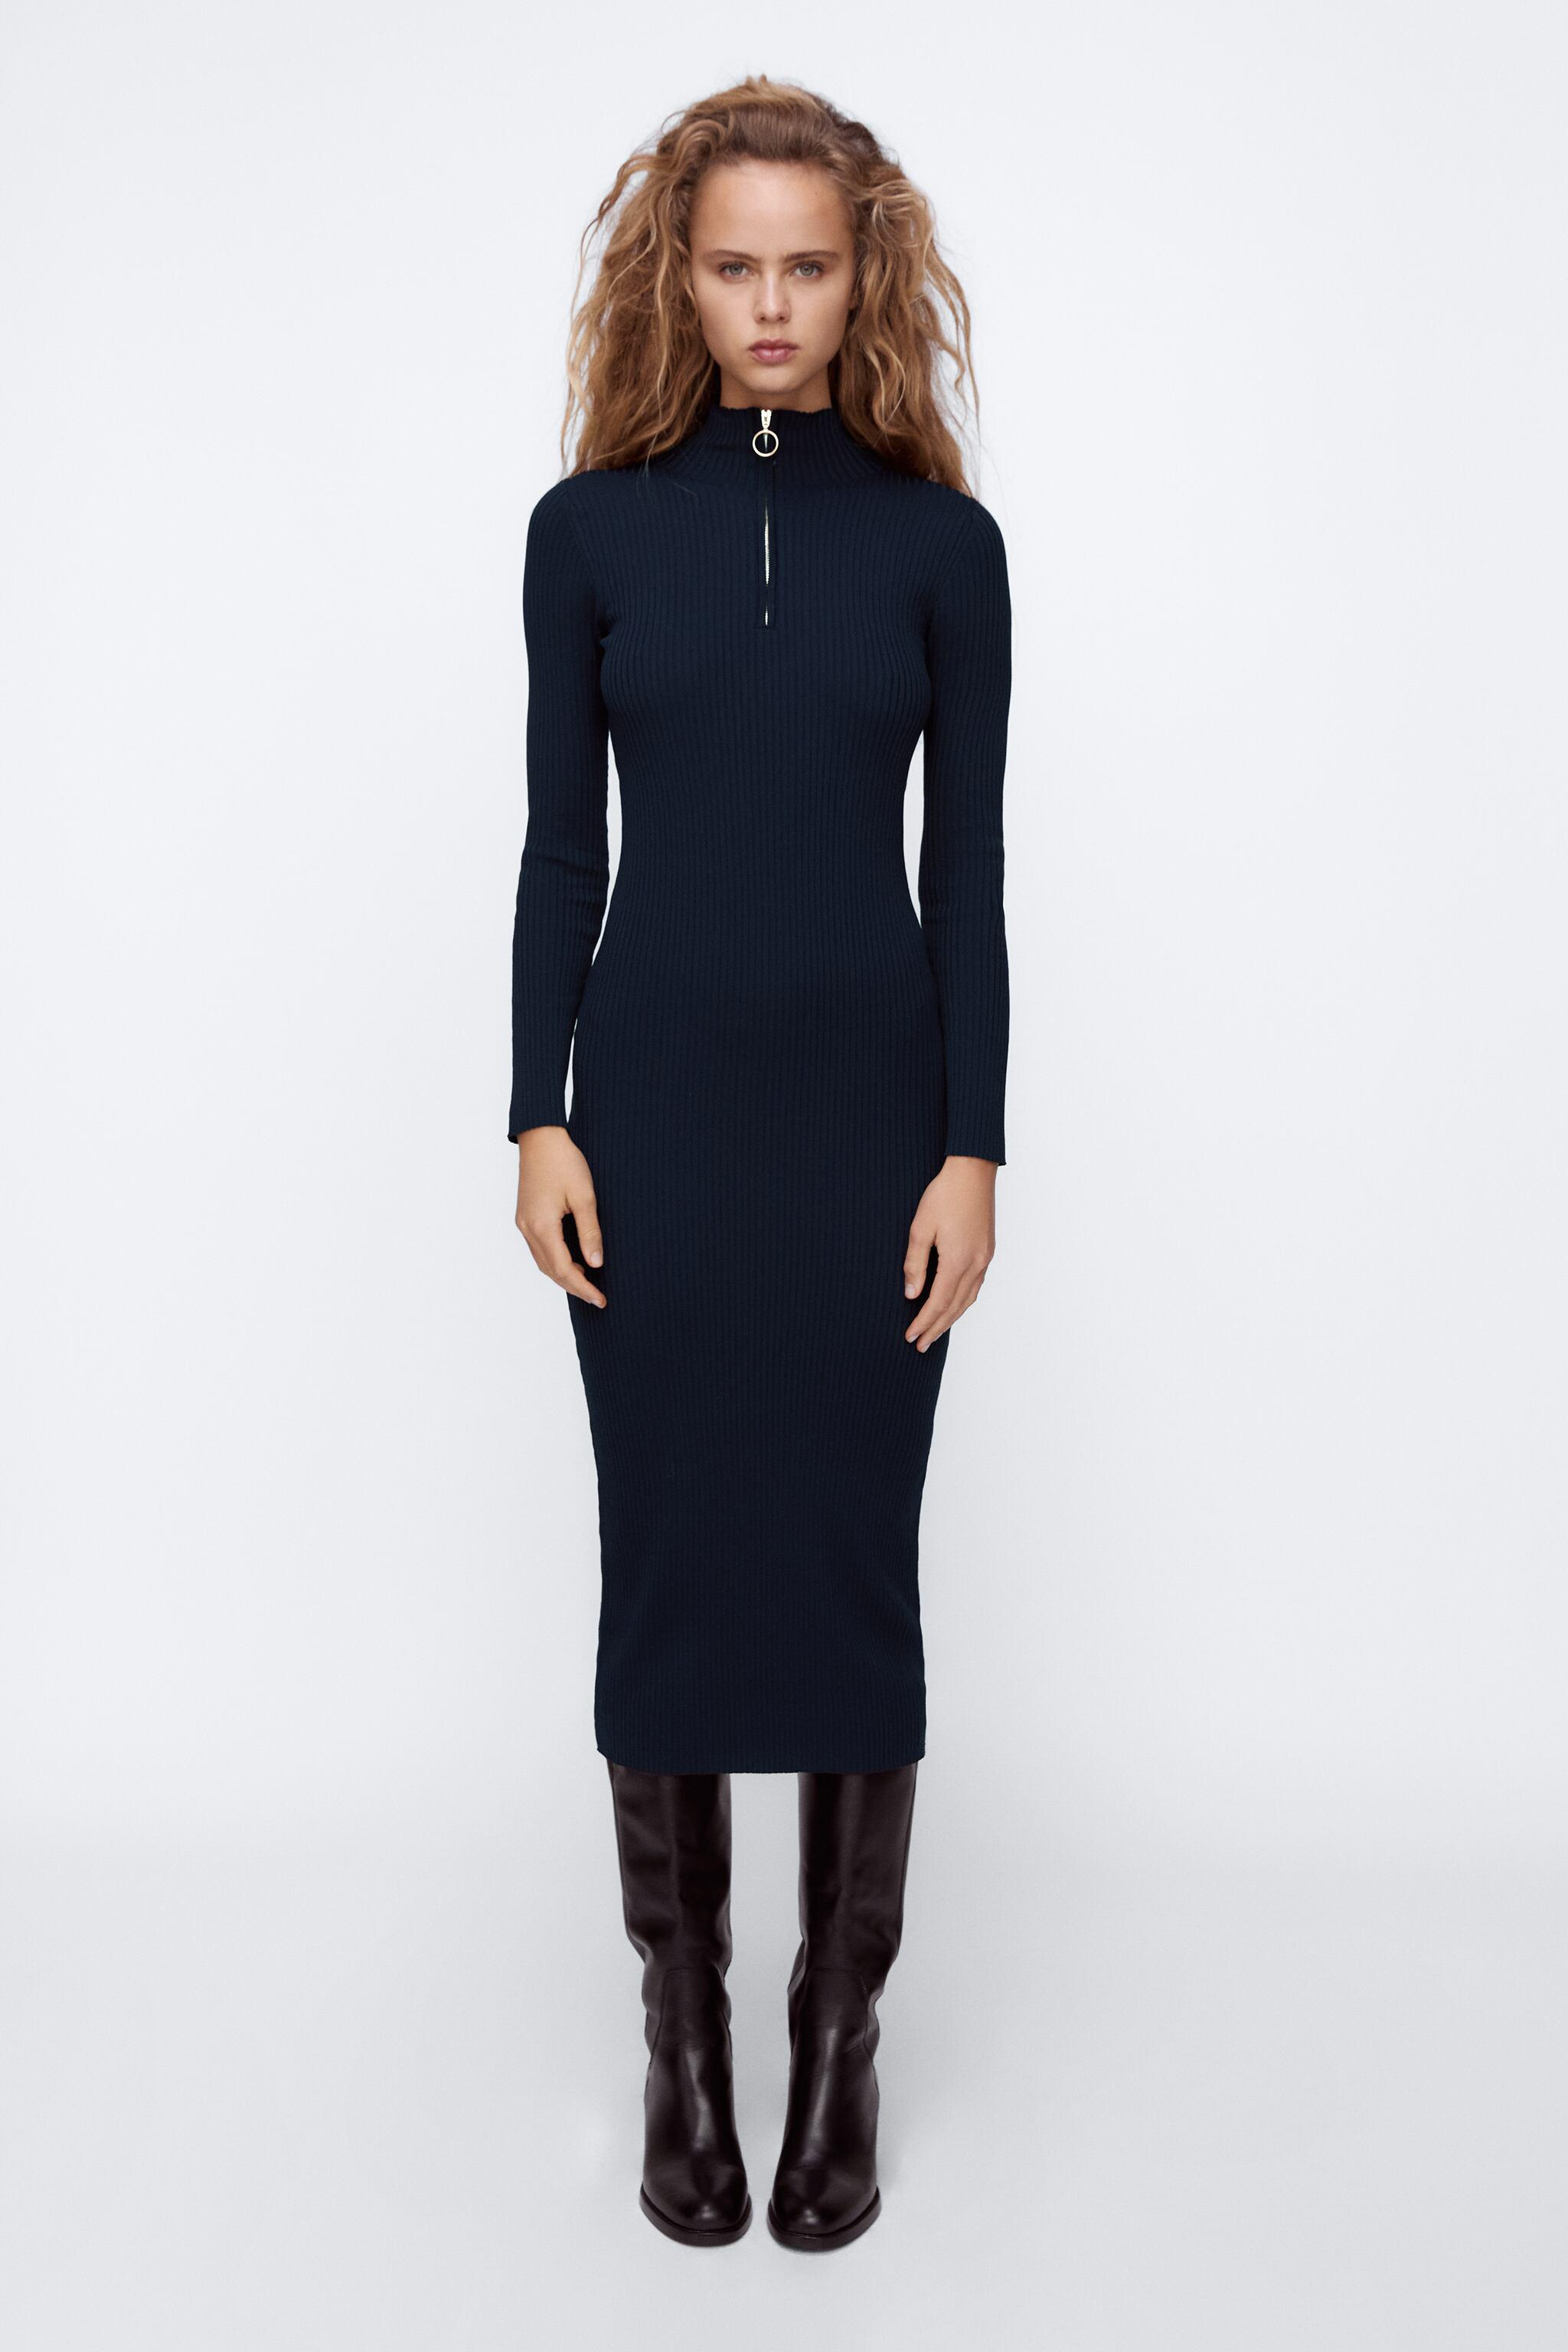 RIBBED KNIT DRESS WITH ZIPPER